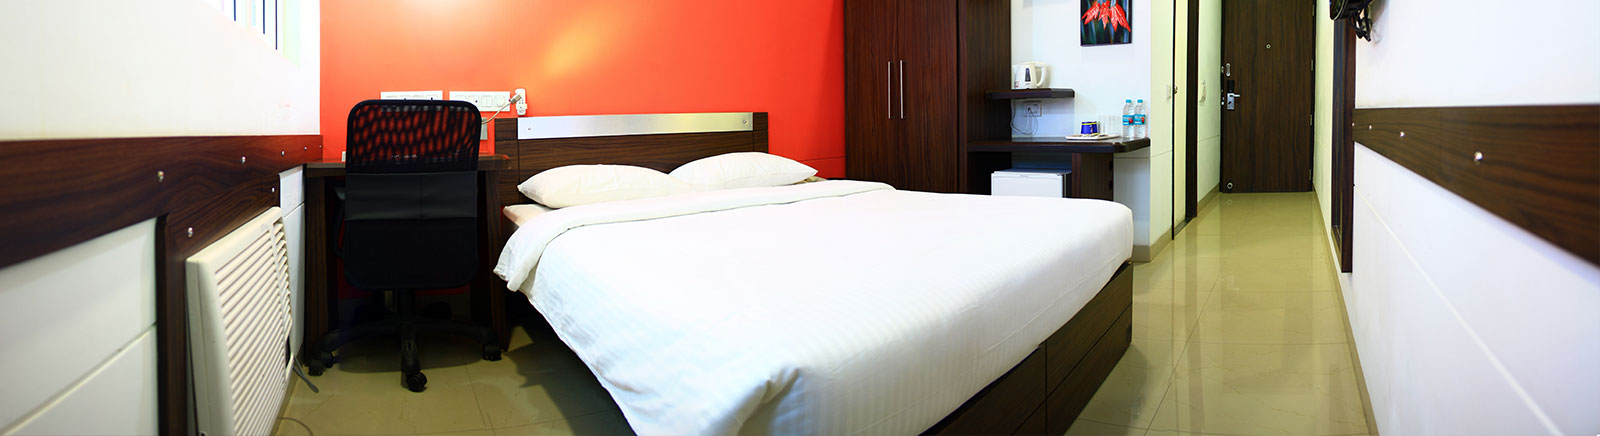 Ginger Manesar Hotel Rooms